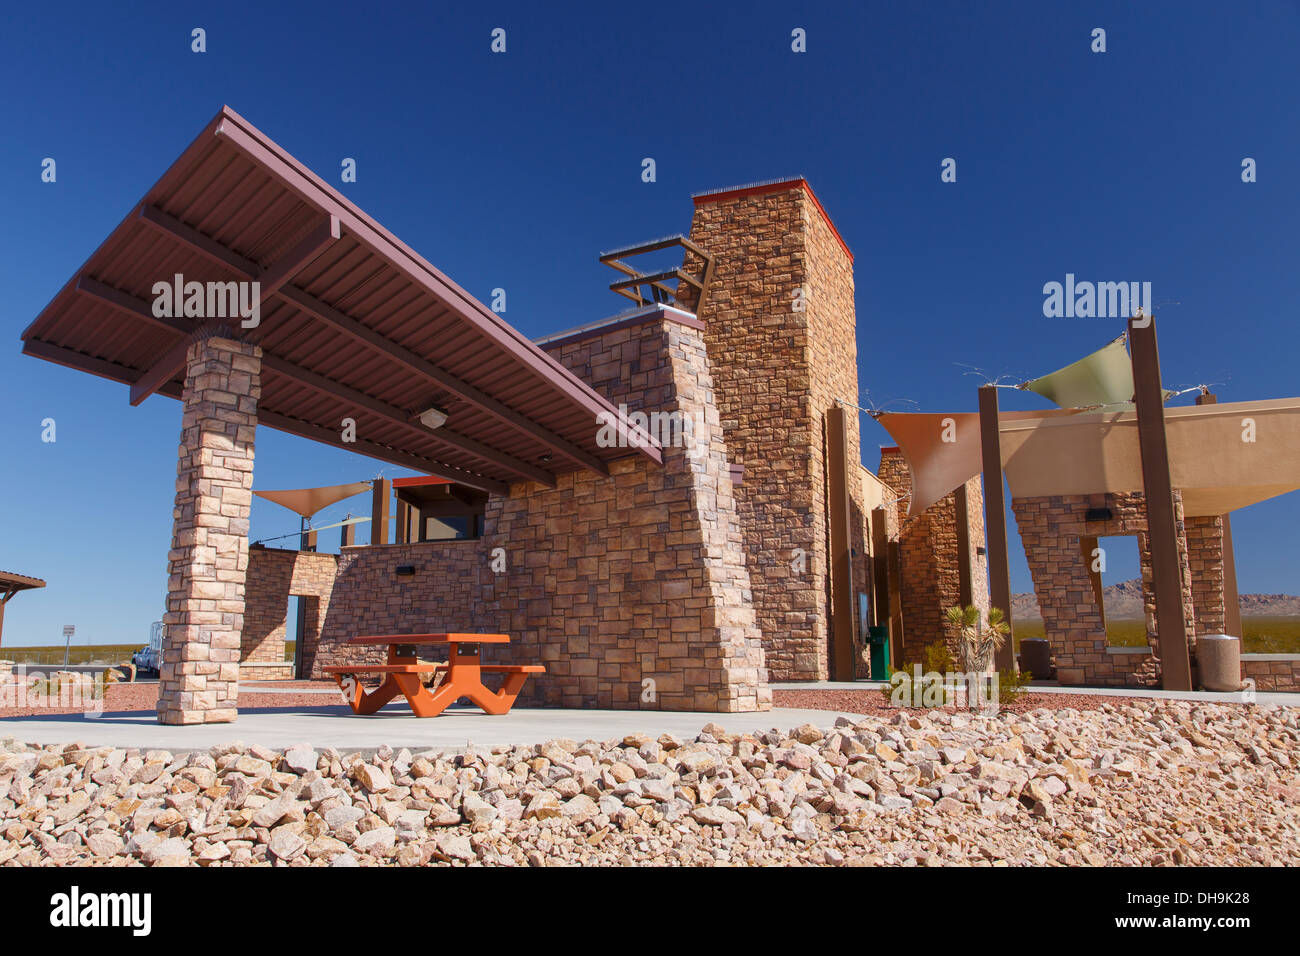 Rest area along Highway 95, Nevada. Stock Photo